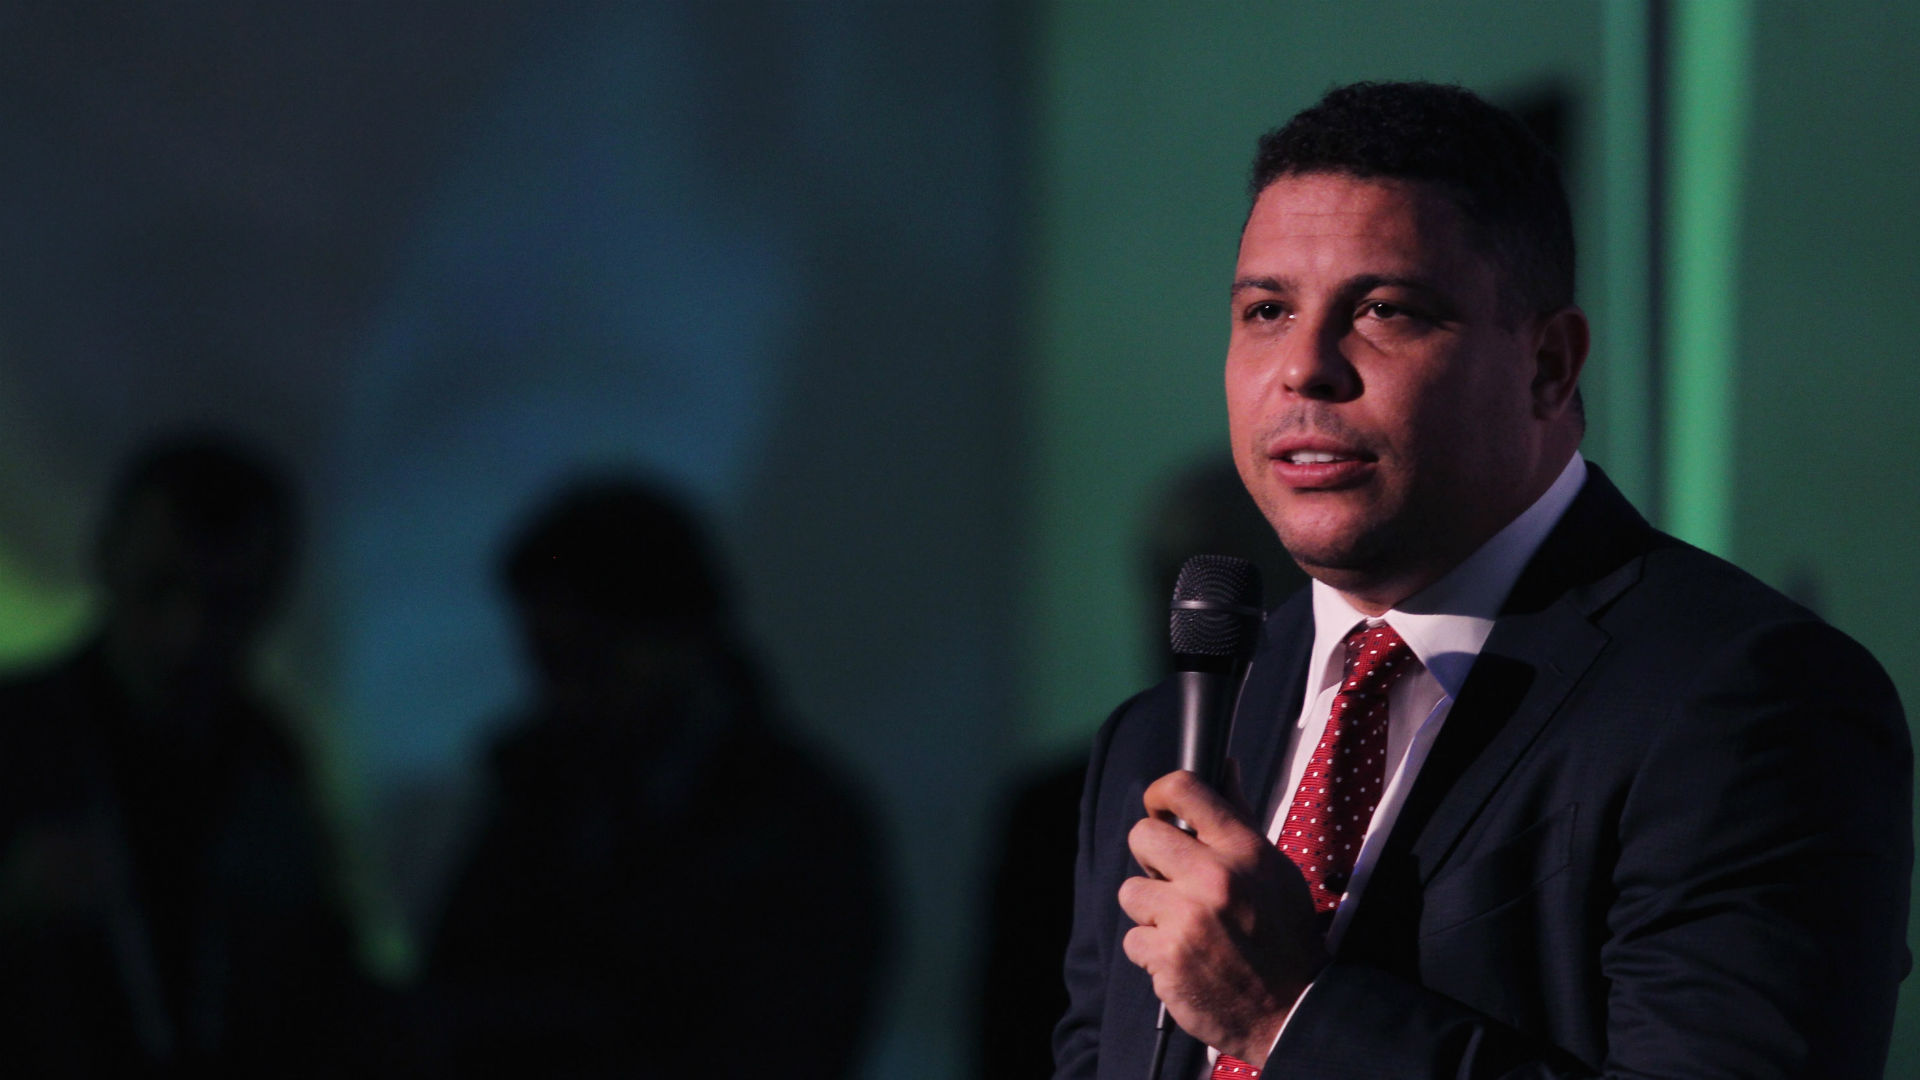 Brazil legend Ronaldo 'expected more' from Neymar at World Cup